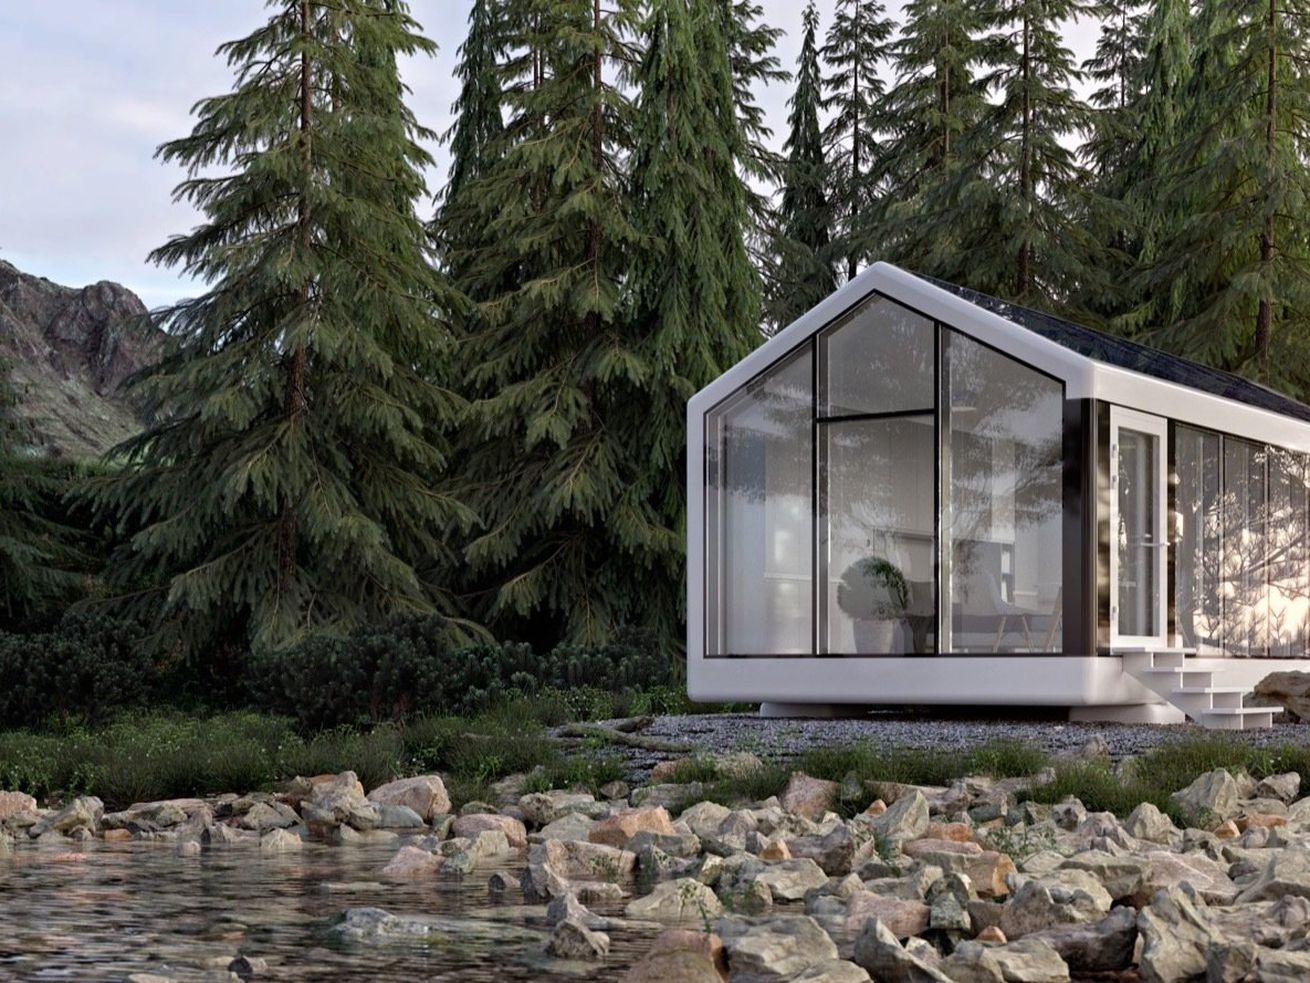 Solar-powered prefab home comes move-in ready